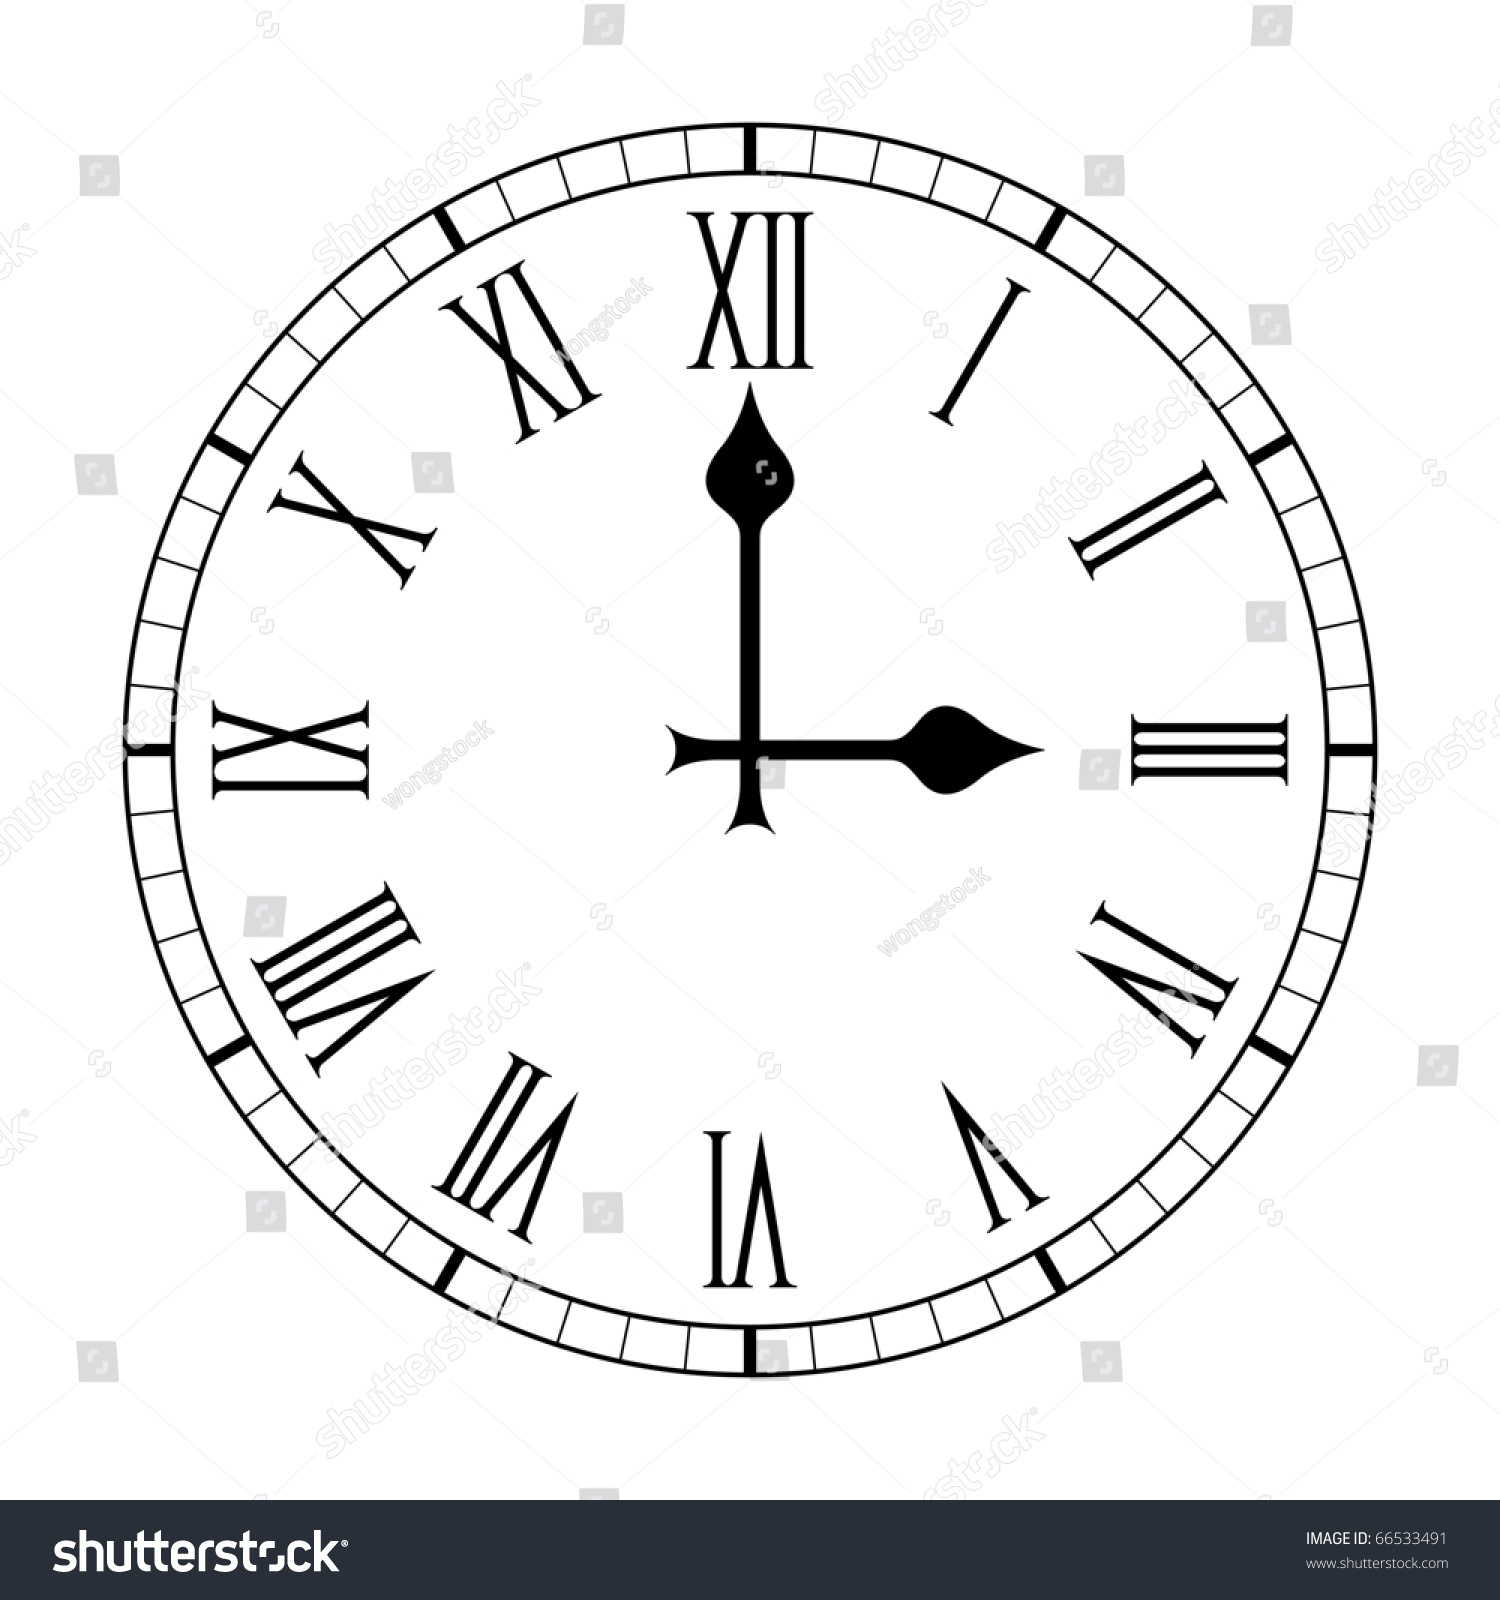 Plain Roman Numeral Clock Face Stock Vector 66533491